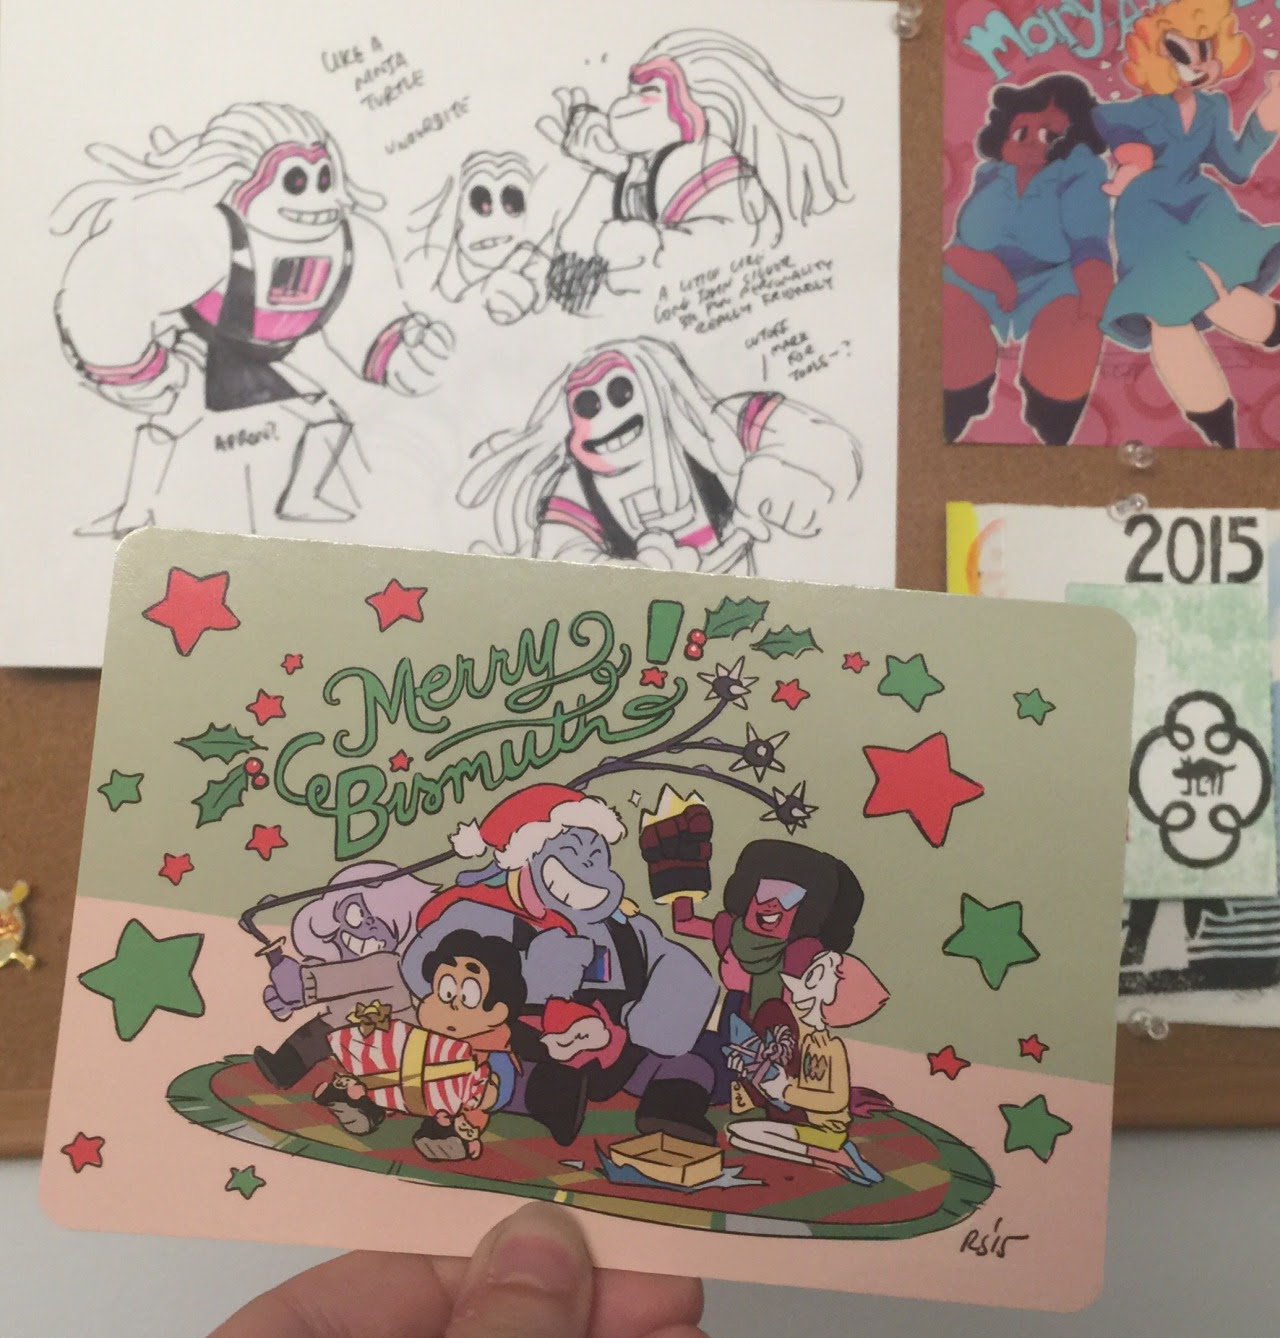 2015 secret crew holiday card - Merry Bismuth!